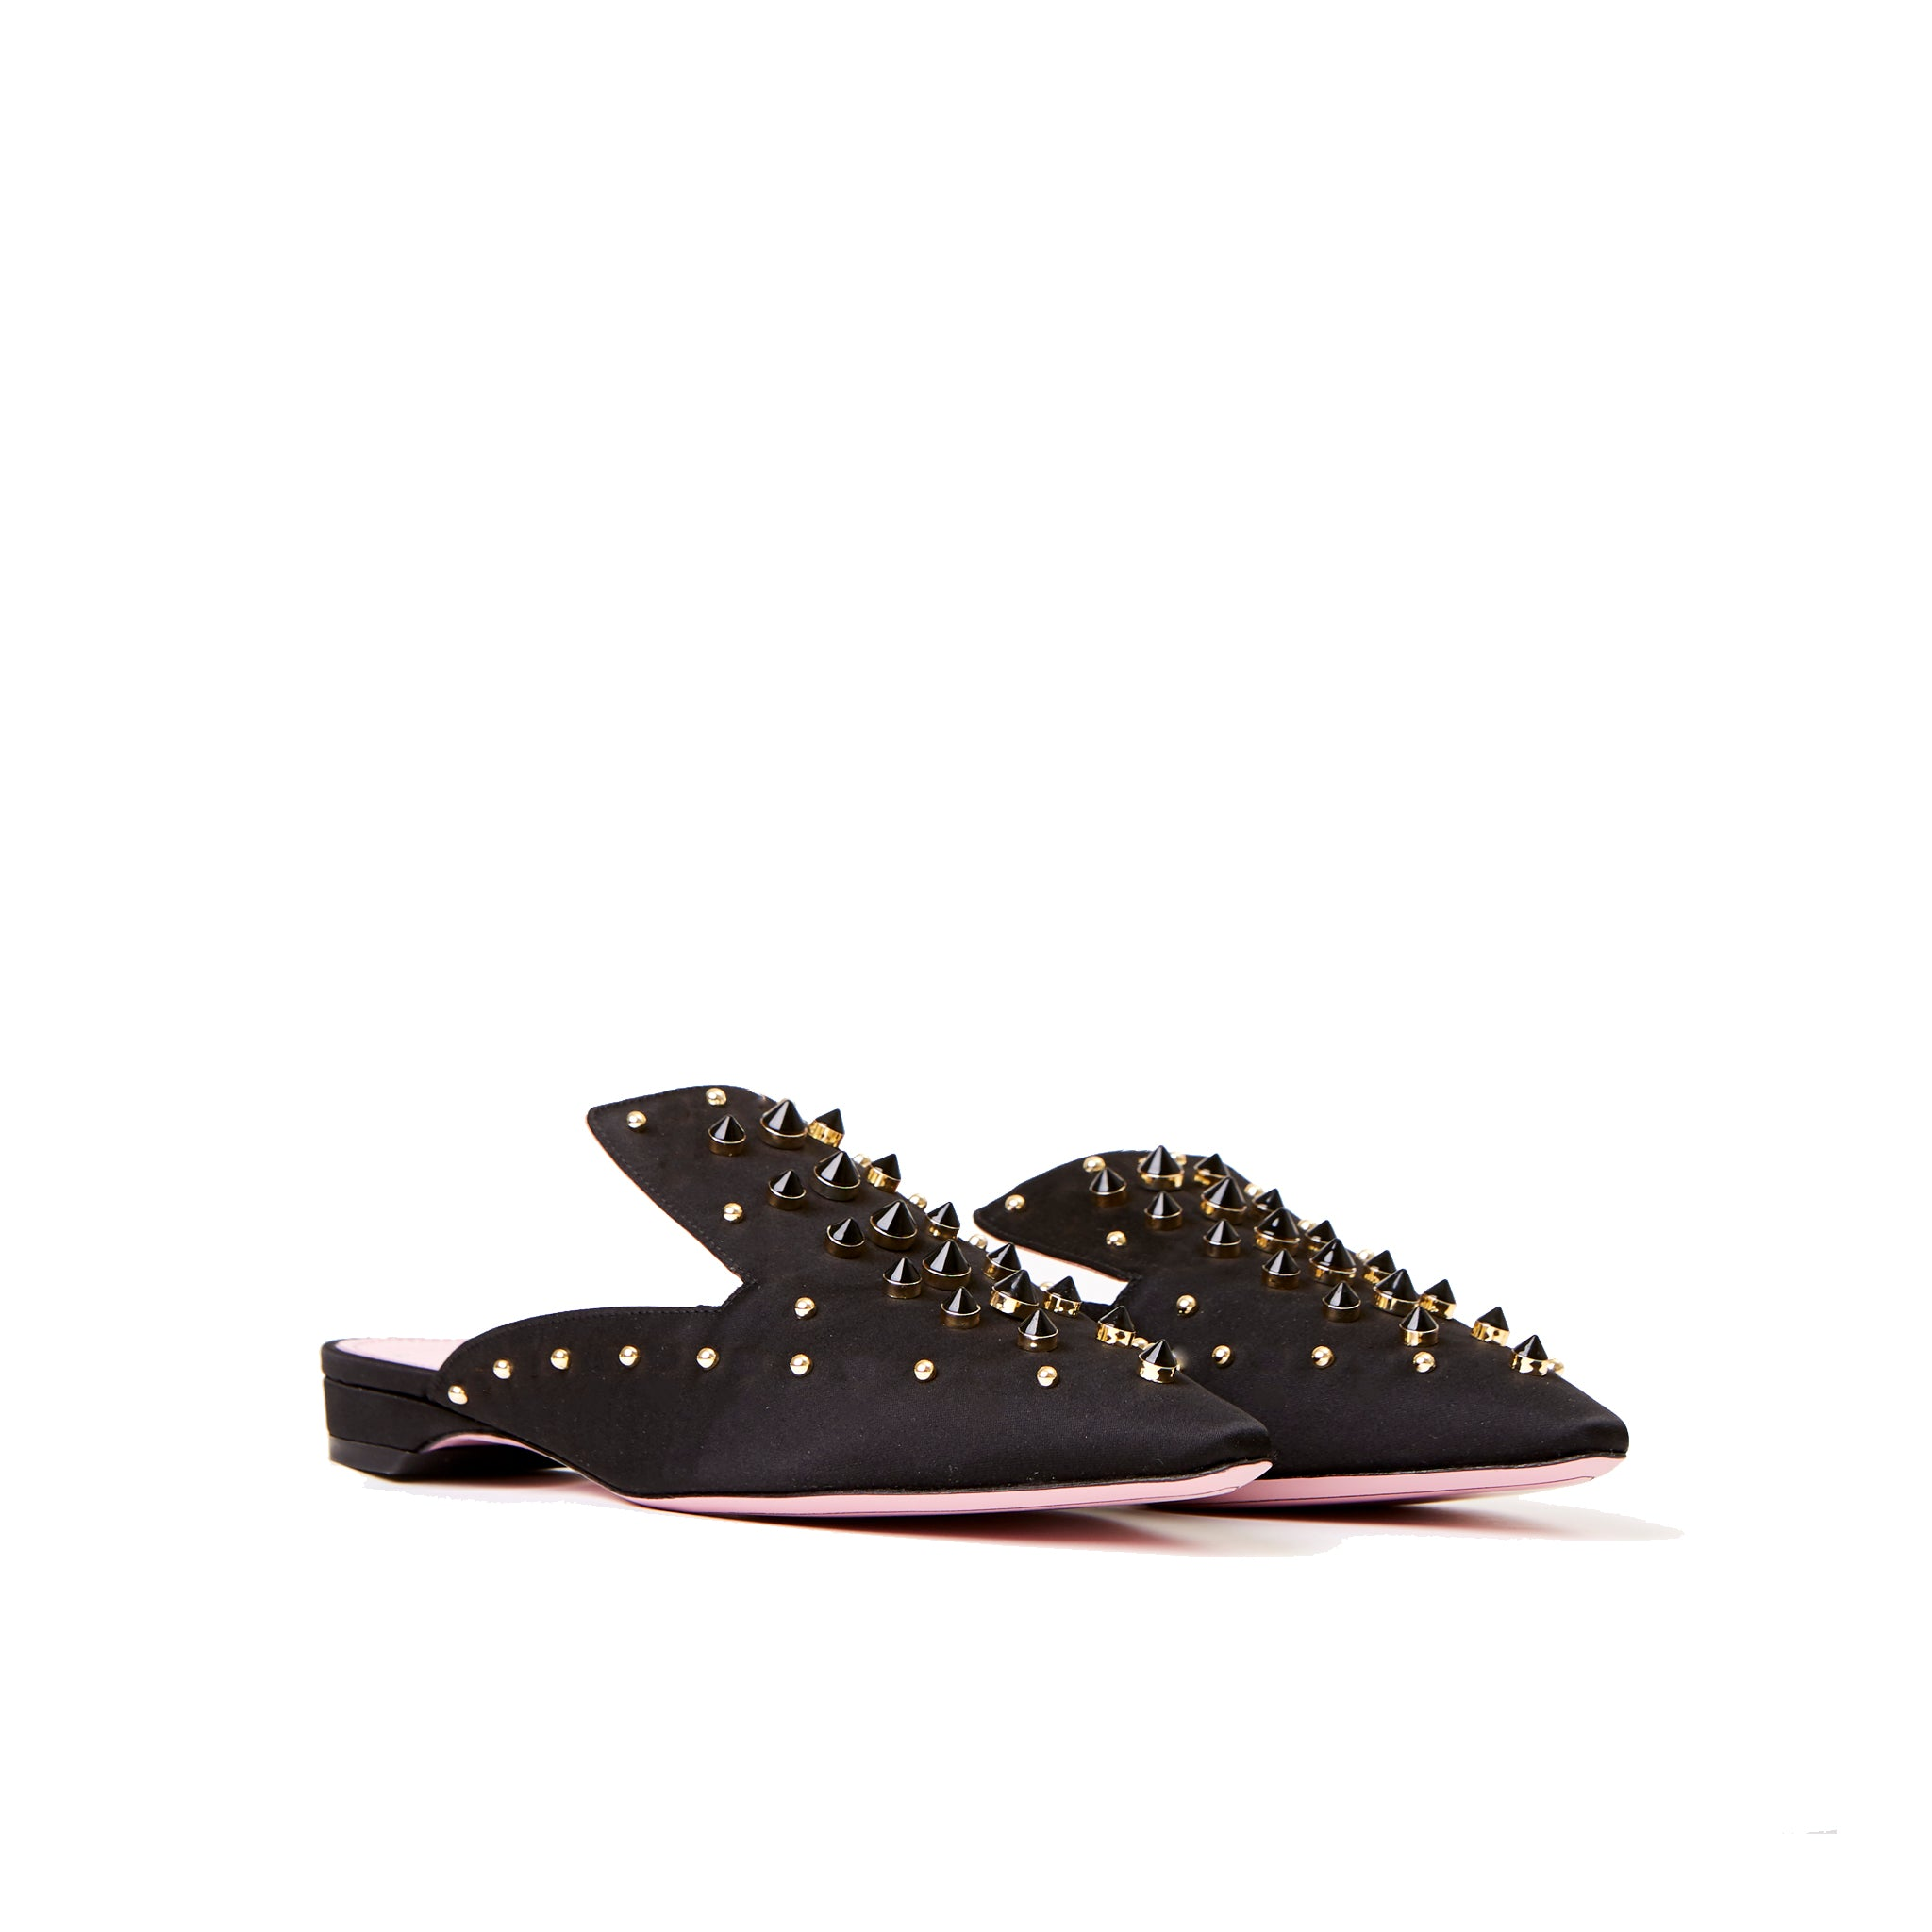 Phare Studded mule in black silk satin with gold and black studs3/4 view